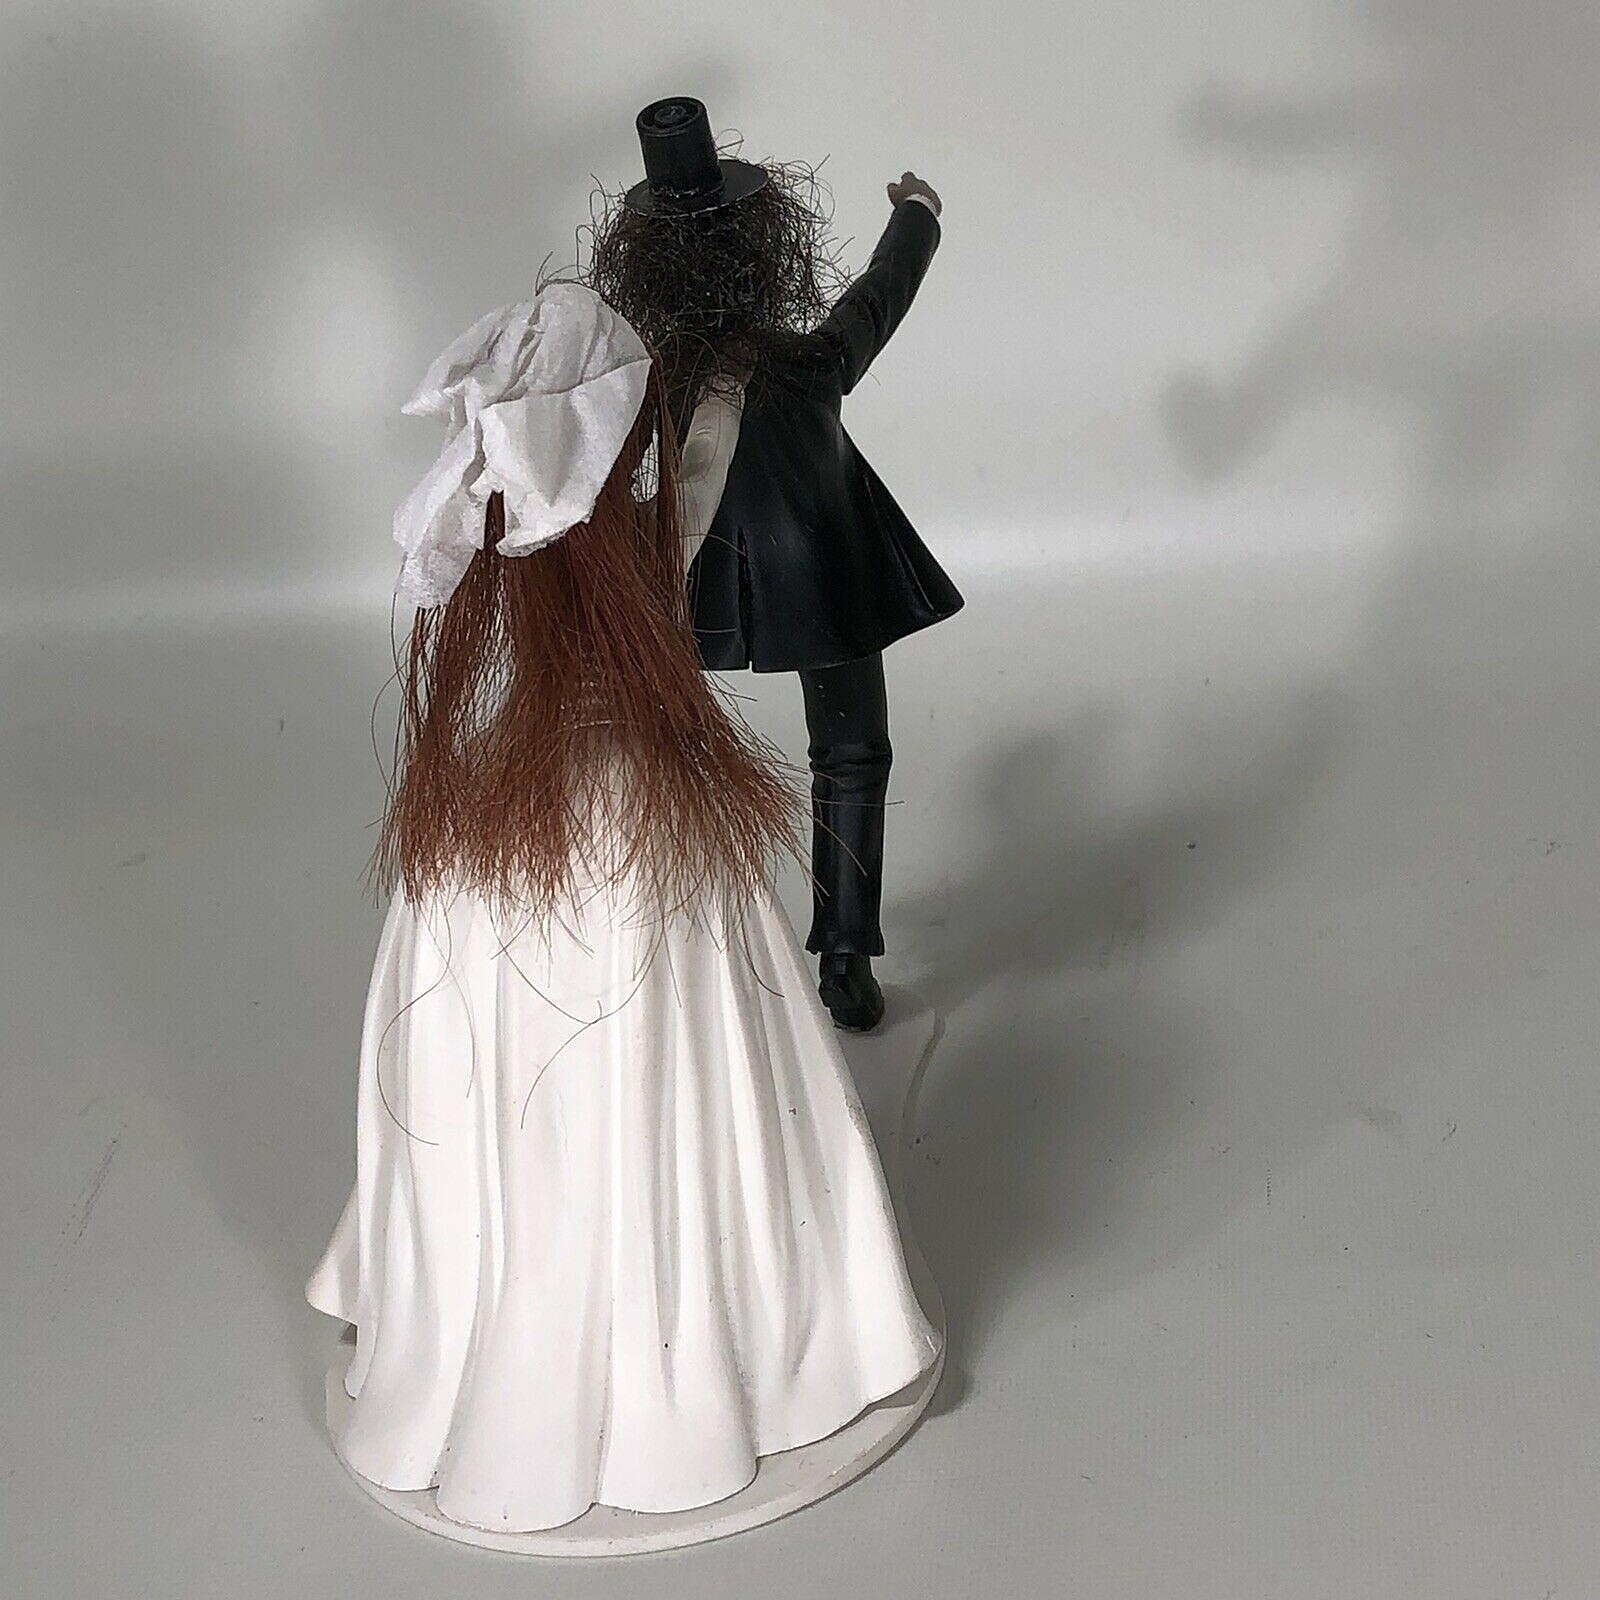 Slash's Real Hair Accents Guns N' Roses Cake Topper on eBay